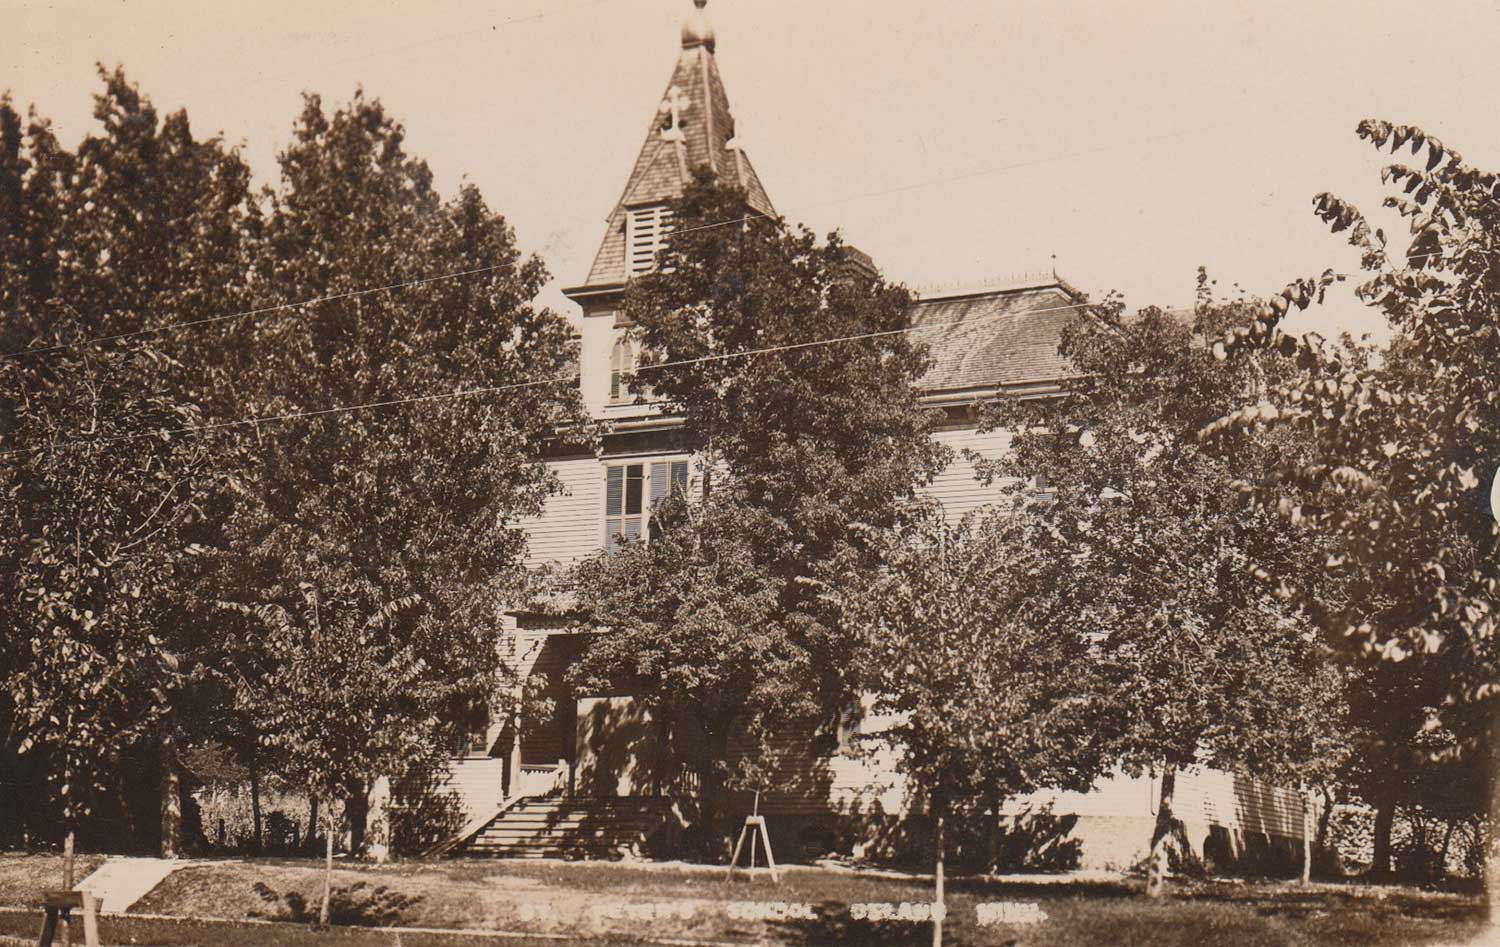 3. Church Postcard